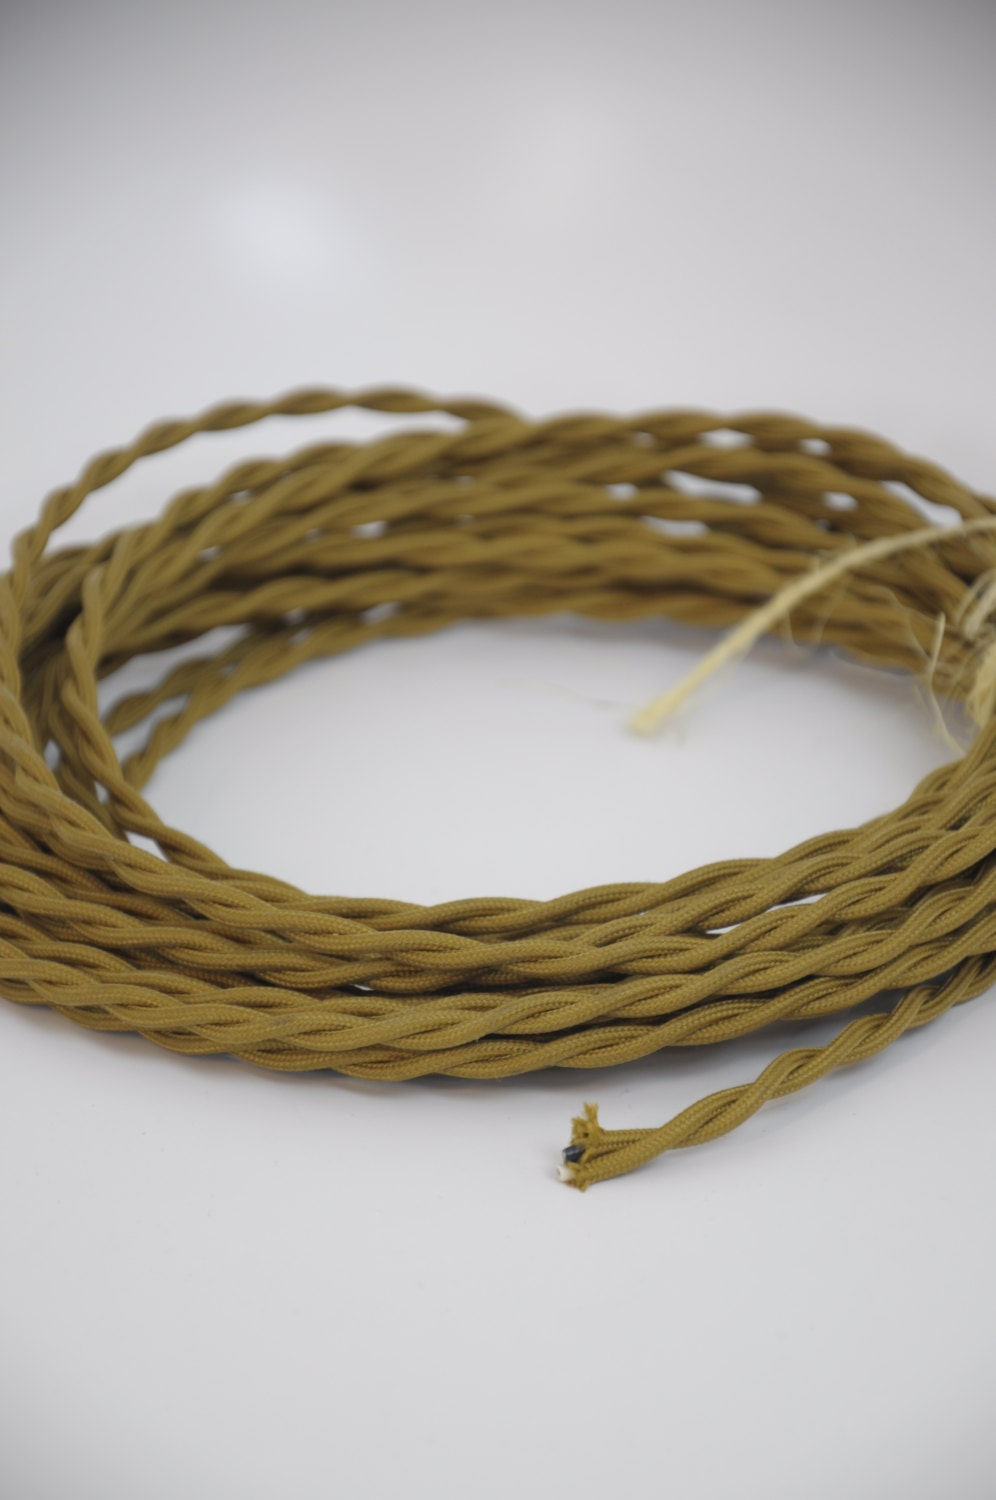 Twisted Cloth Covered Electrical Cord Wire LENGTH BY FOOT Copper ...